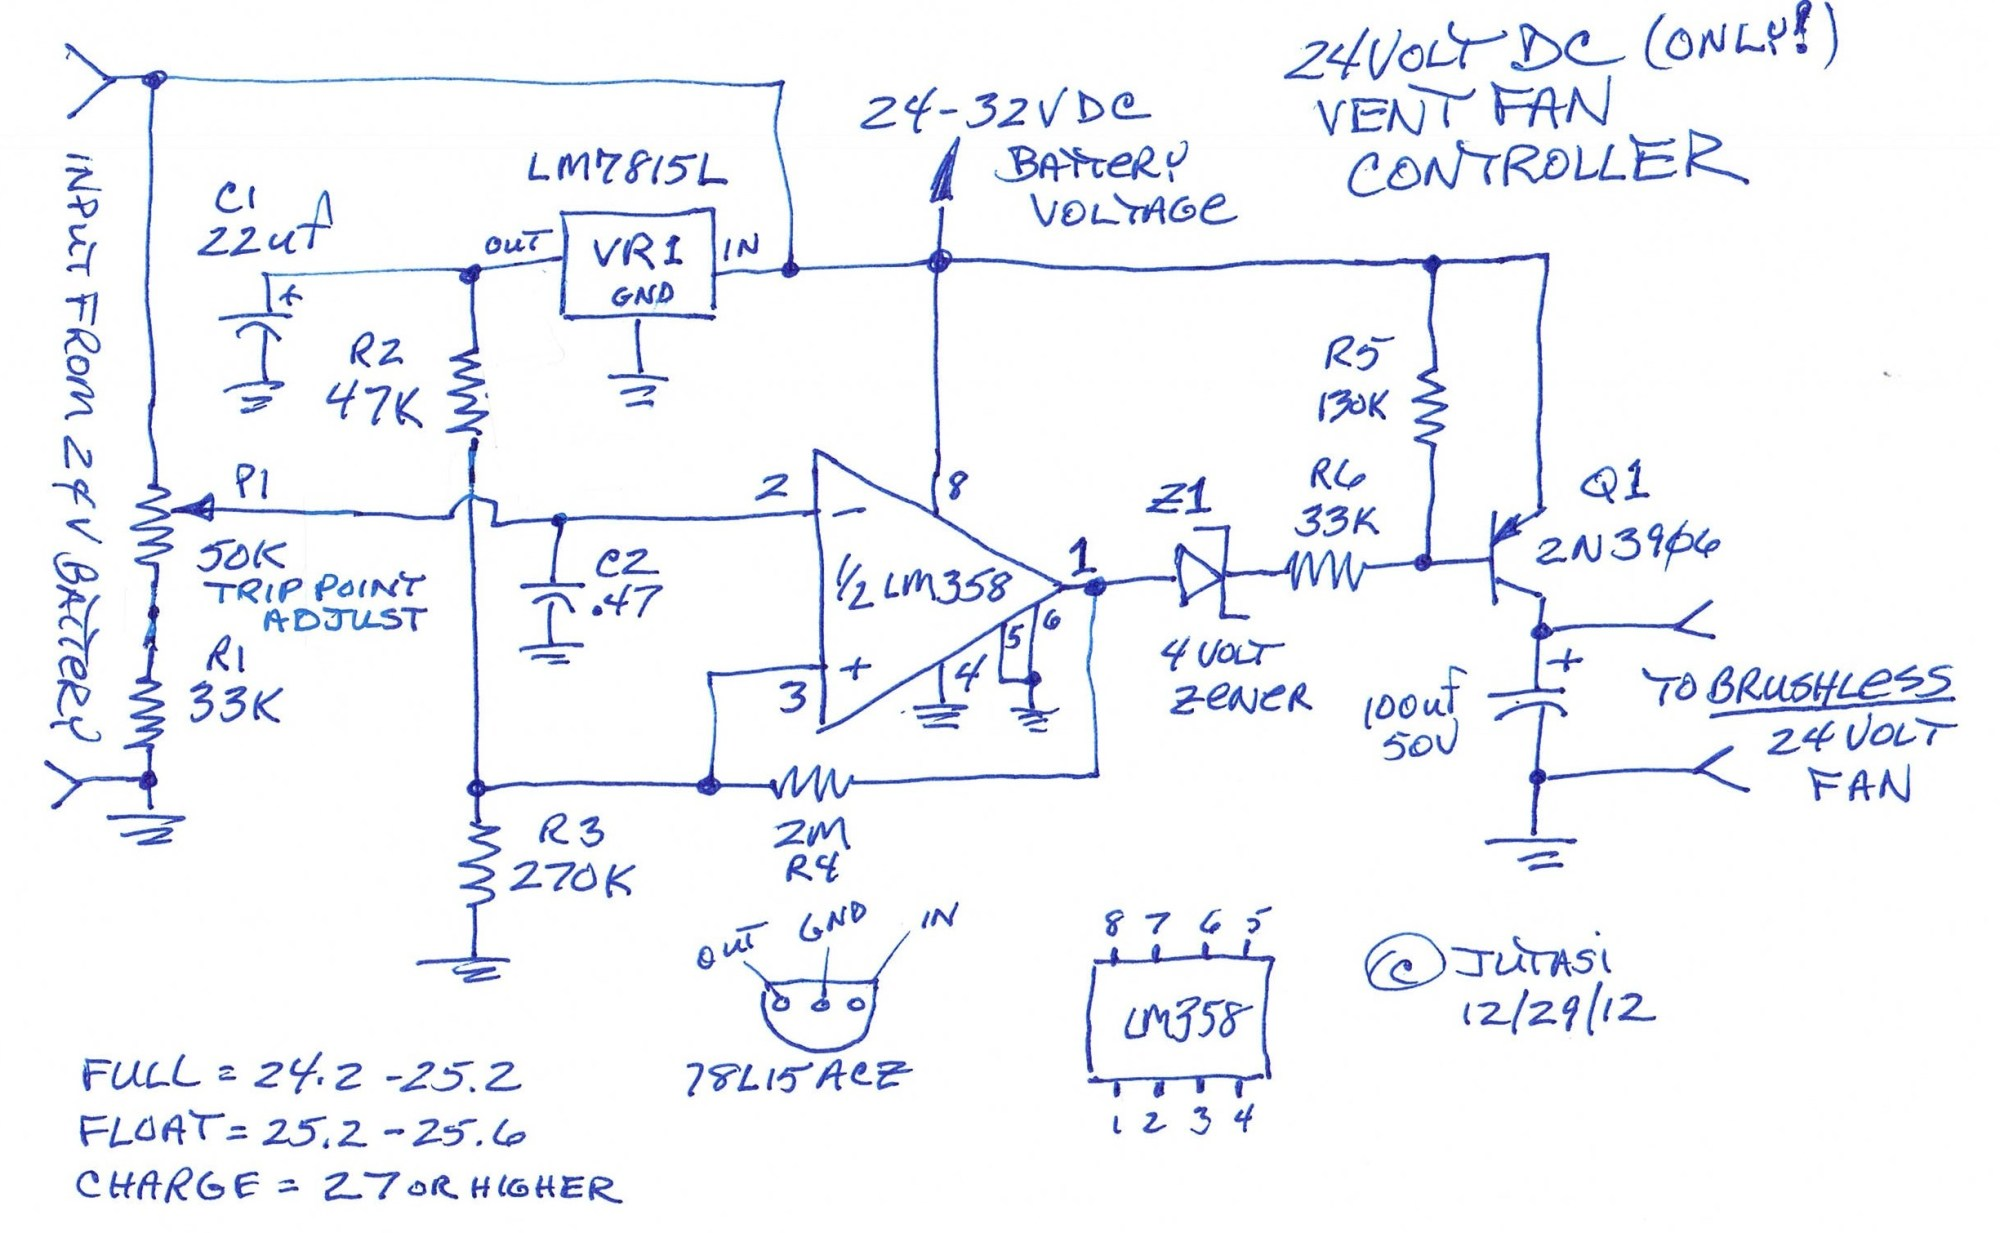 hight resolution of 24 volt control wiring schema wiring diagrams 24 volt wiring diagram for wheel loader 24 volt